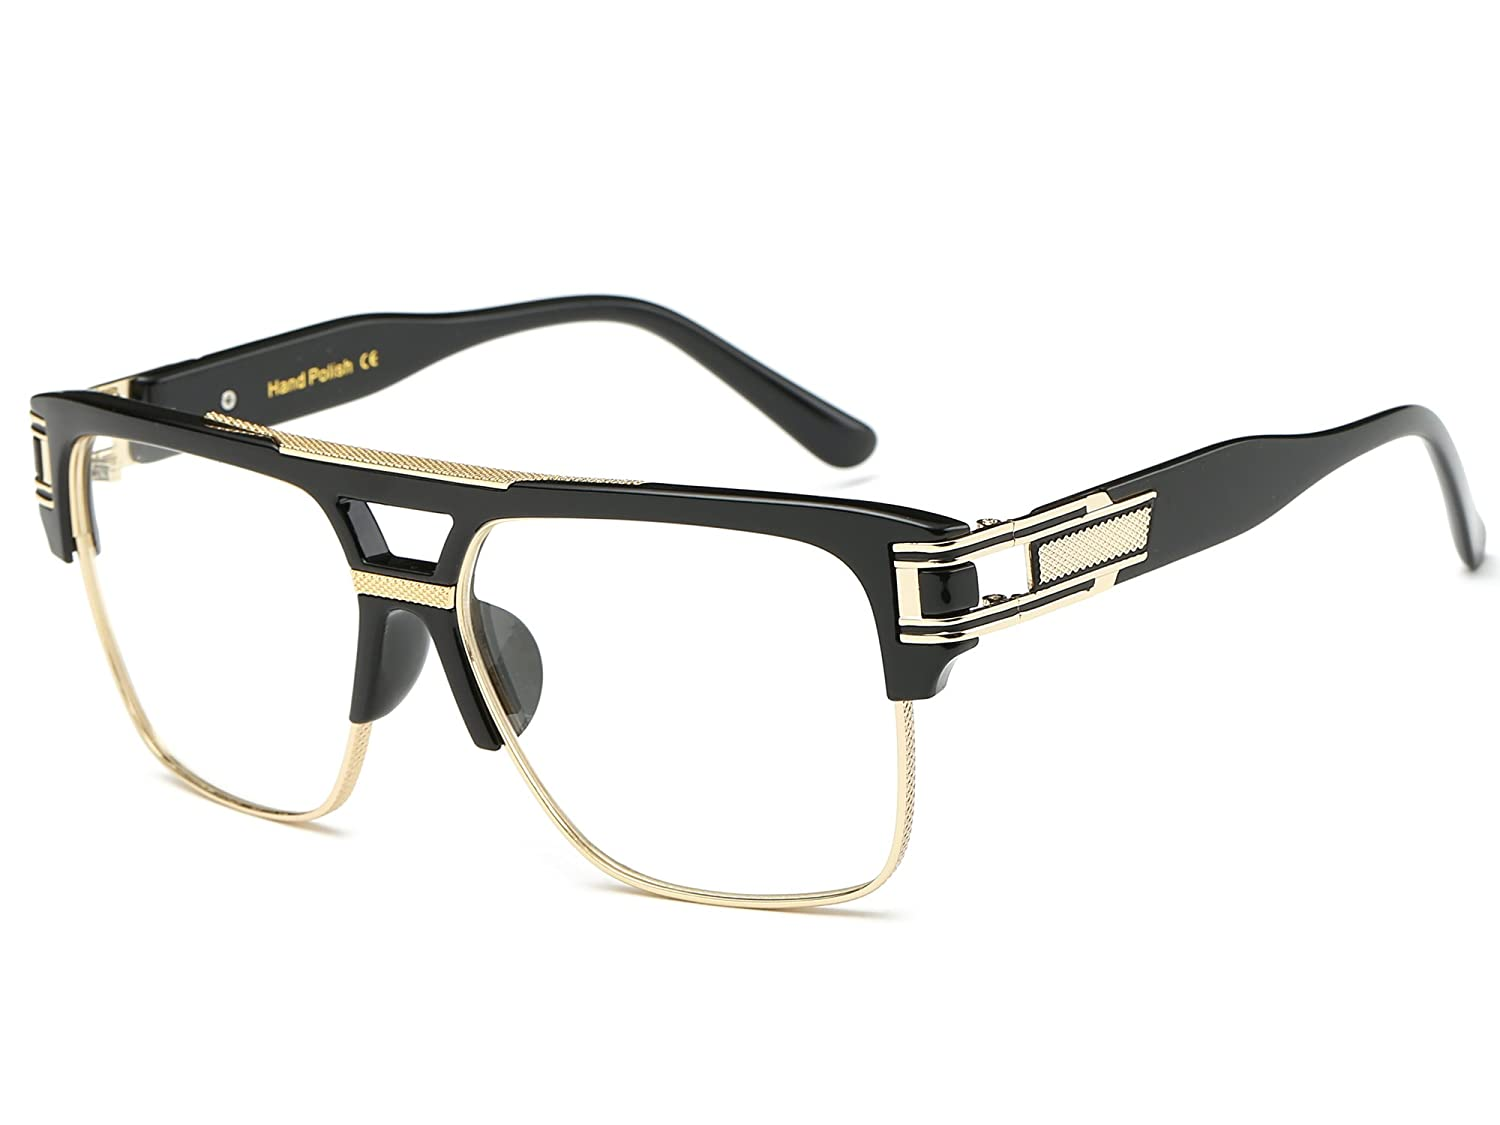 5f6e637388846 Bridge  15 millimeters. Arm  142 millimeters. Reinforced Metal Hinges High  optical quality frames. Classic Square Aviator Frame 100% Protection  Against ...